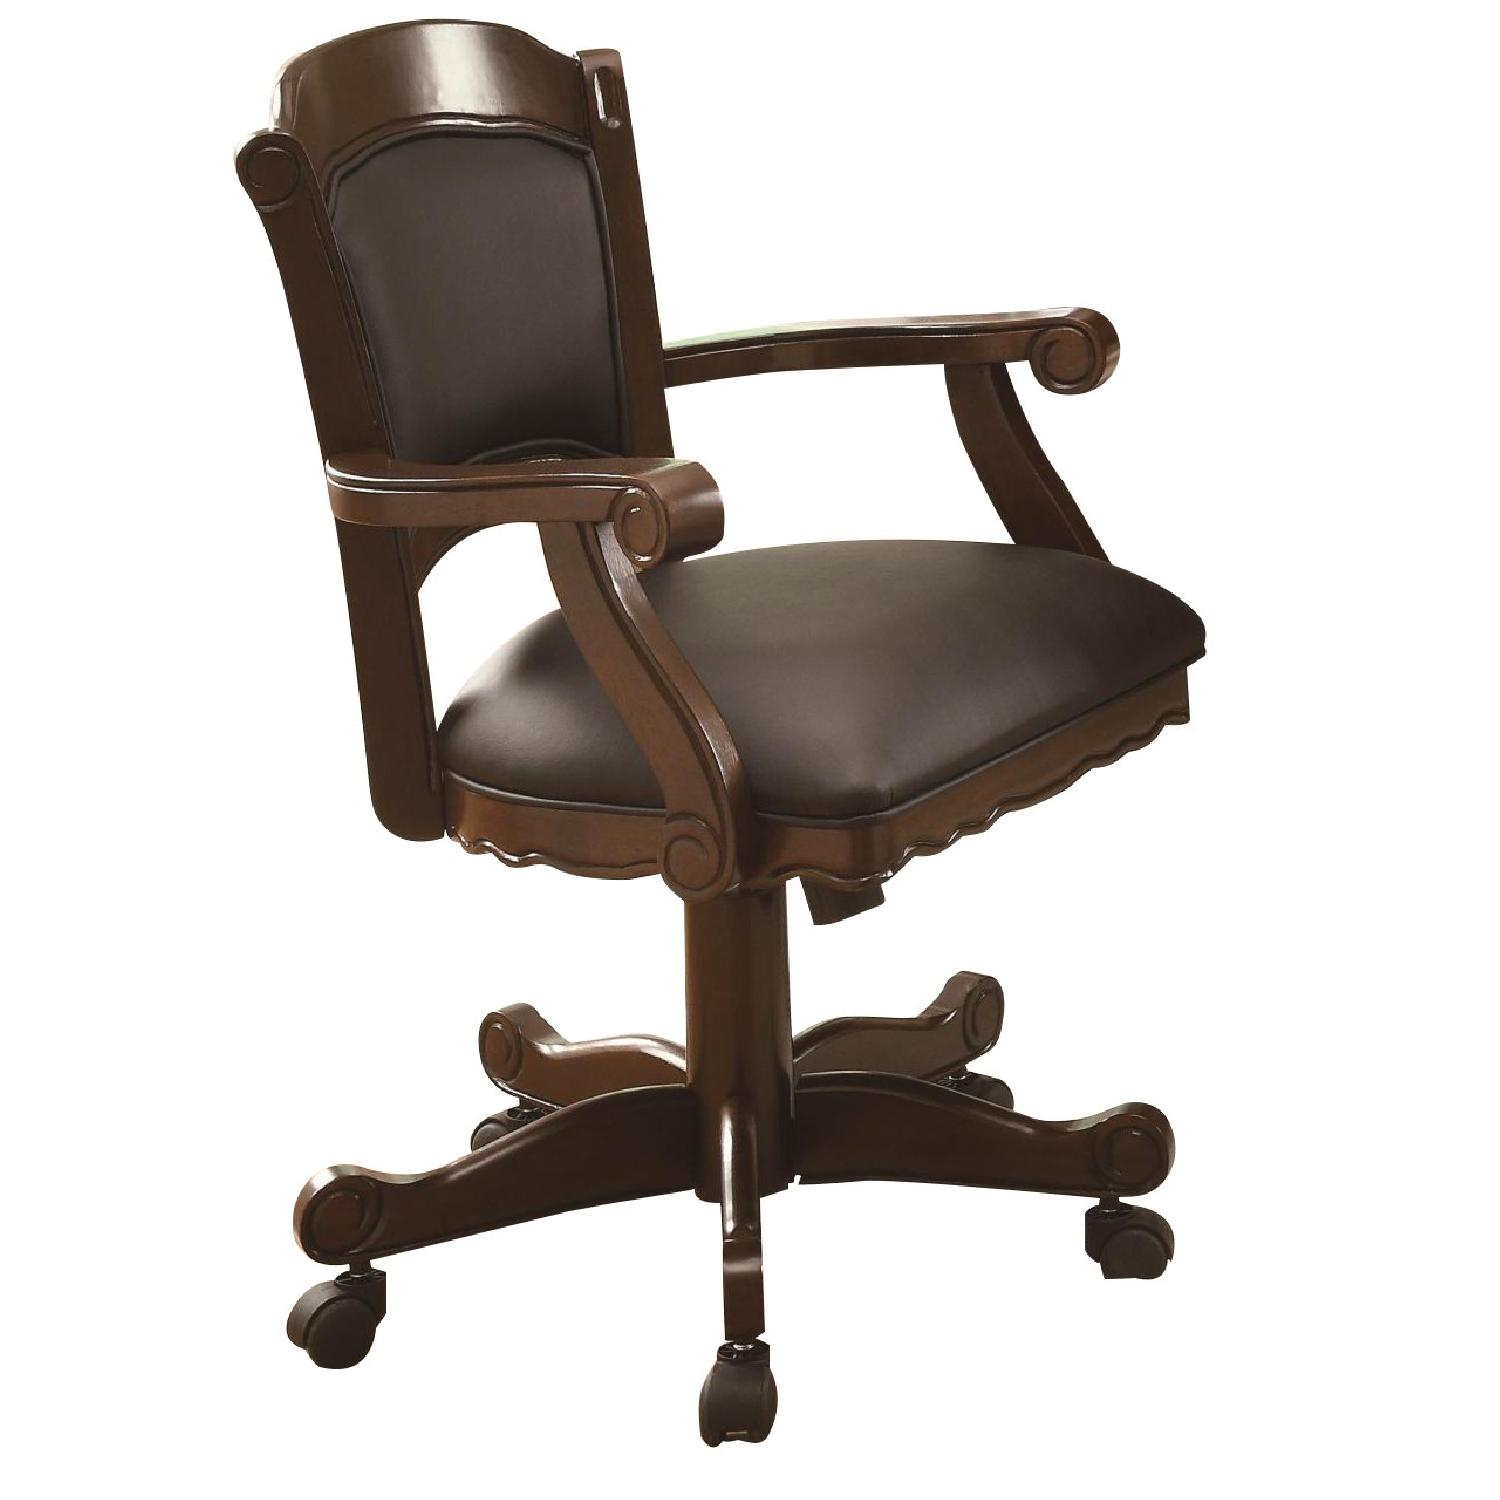 Coaster Turk Arm Game Chair W/ Casters In Brown Cherry ...